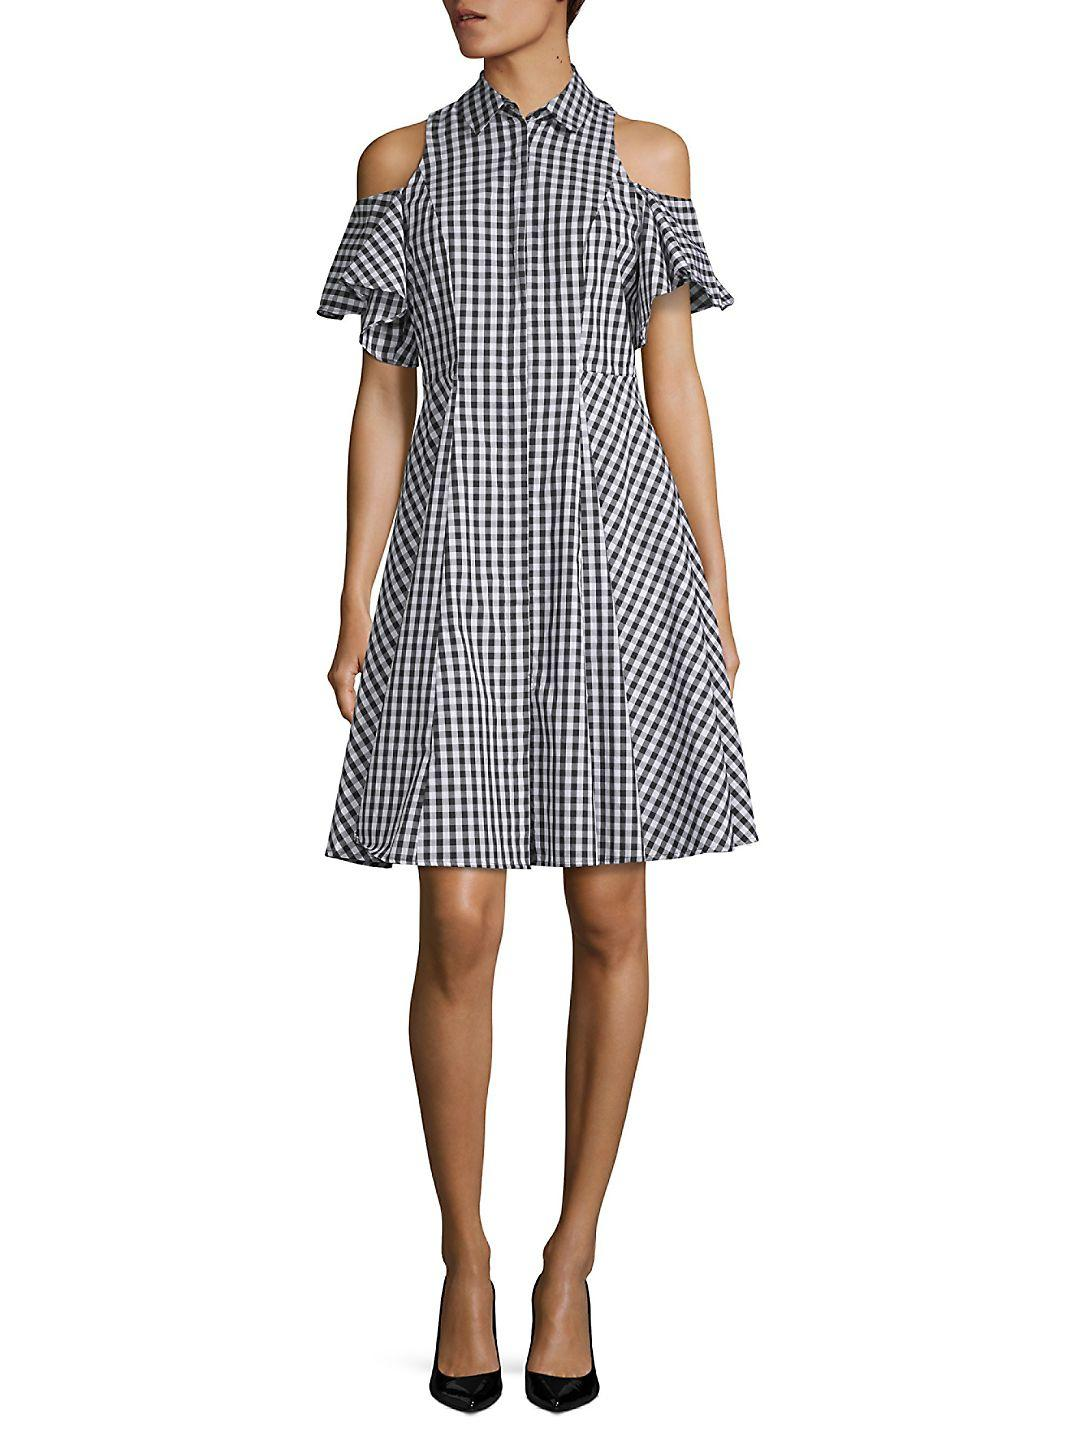 Lyst - Saks fifth avenue Cold-shoulder Gingham Shirtdress in Black